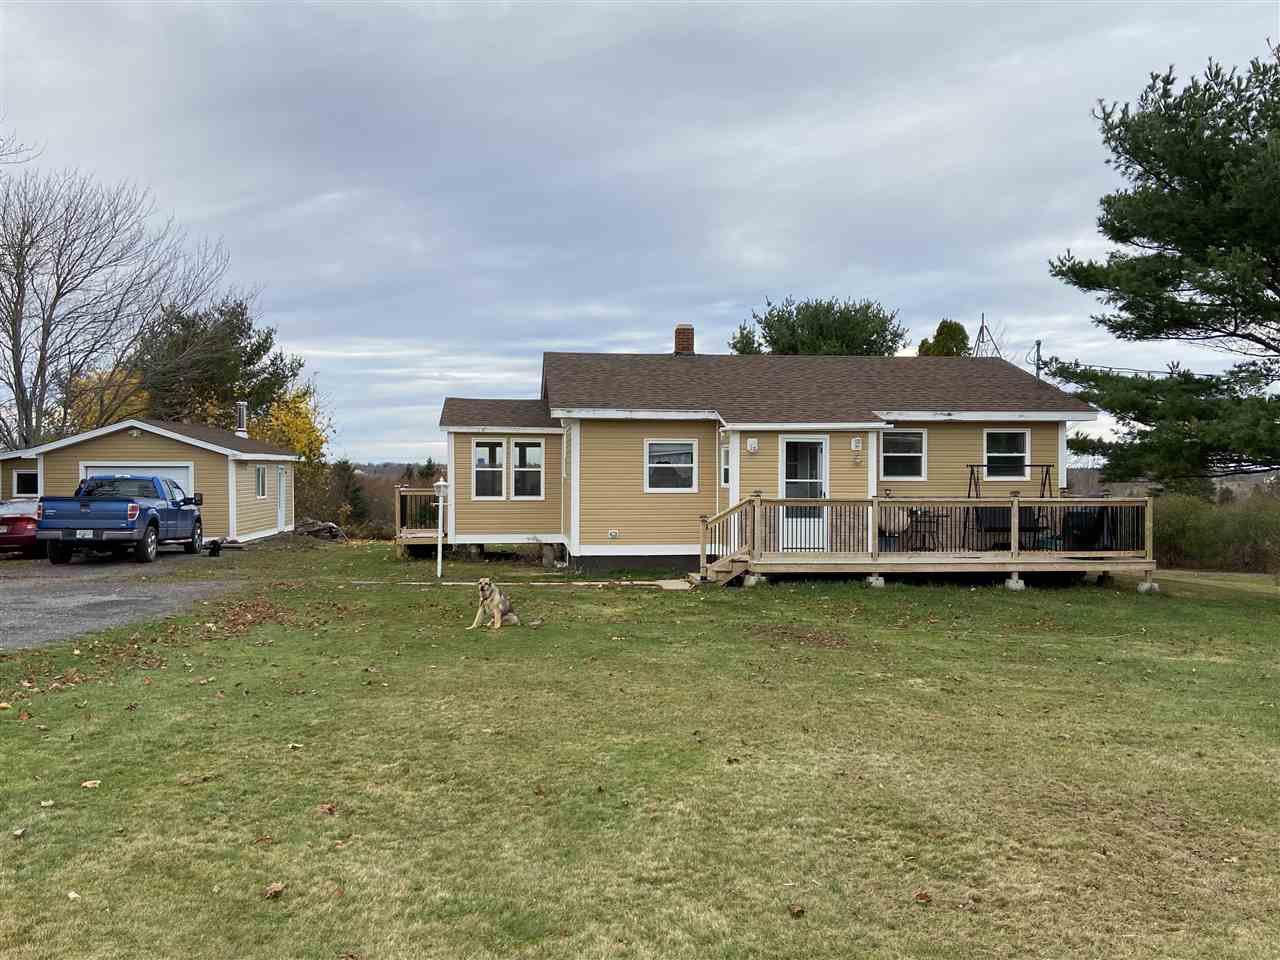 Main Photo: 5923 Pictou Landing Road in Pictou Landing: 108-Rural Pictou County Residential for sale (Northern Region)  : MLS®# 202023794